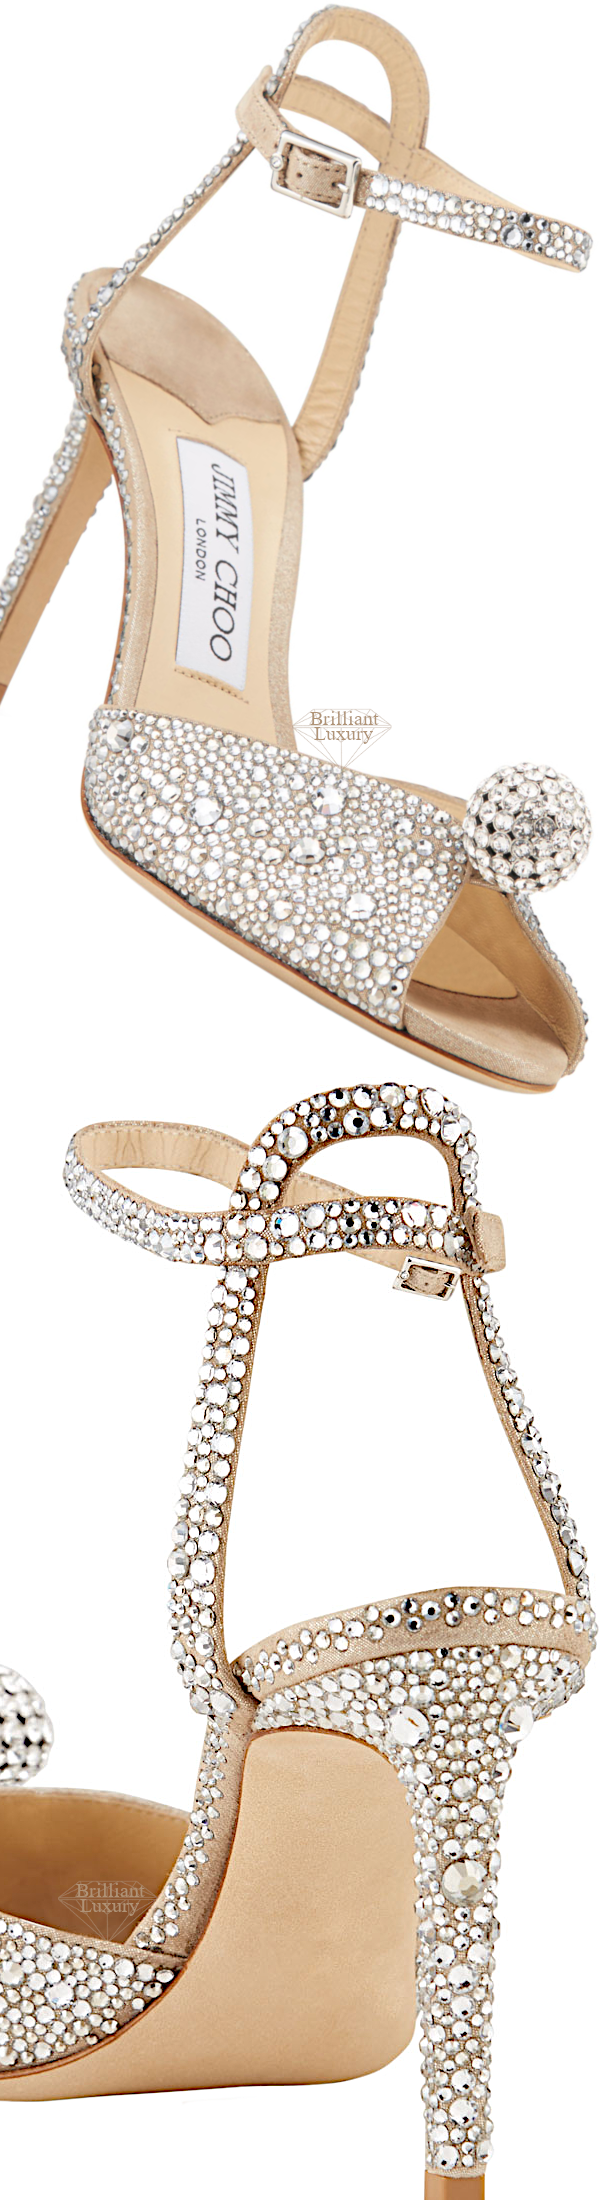 Shoe Collection Spring 2020 Jimmy Choo Sacora Embellished Bejeweled Satin Cocktail Sandals